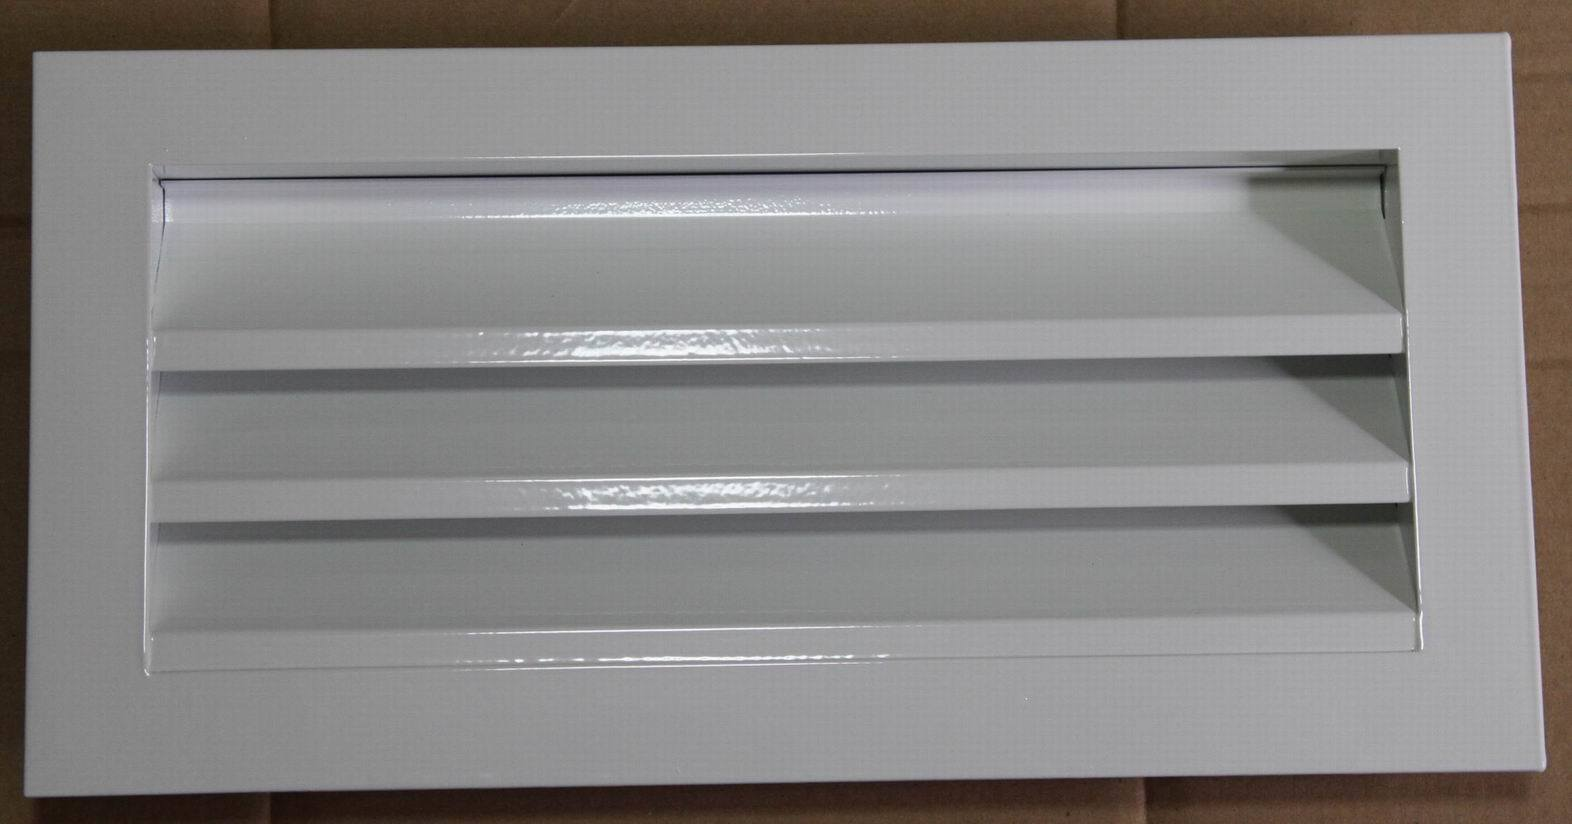 #644C39 China Exhaust Air Louver China Exhaust Air Louver Water  Best 10383 Air Conditioner Louvers photos with 1572x824 px on helpvideos.info - Air Conditioners, Air Coolers and more